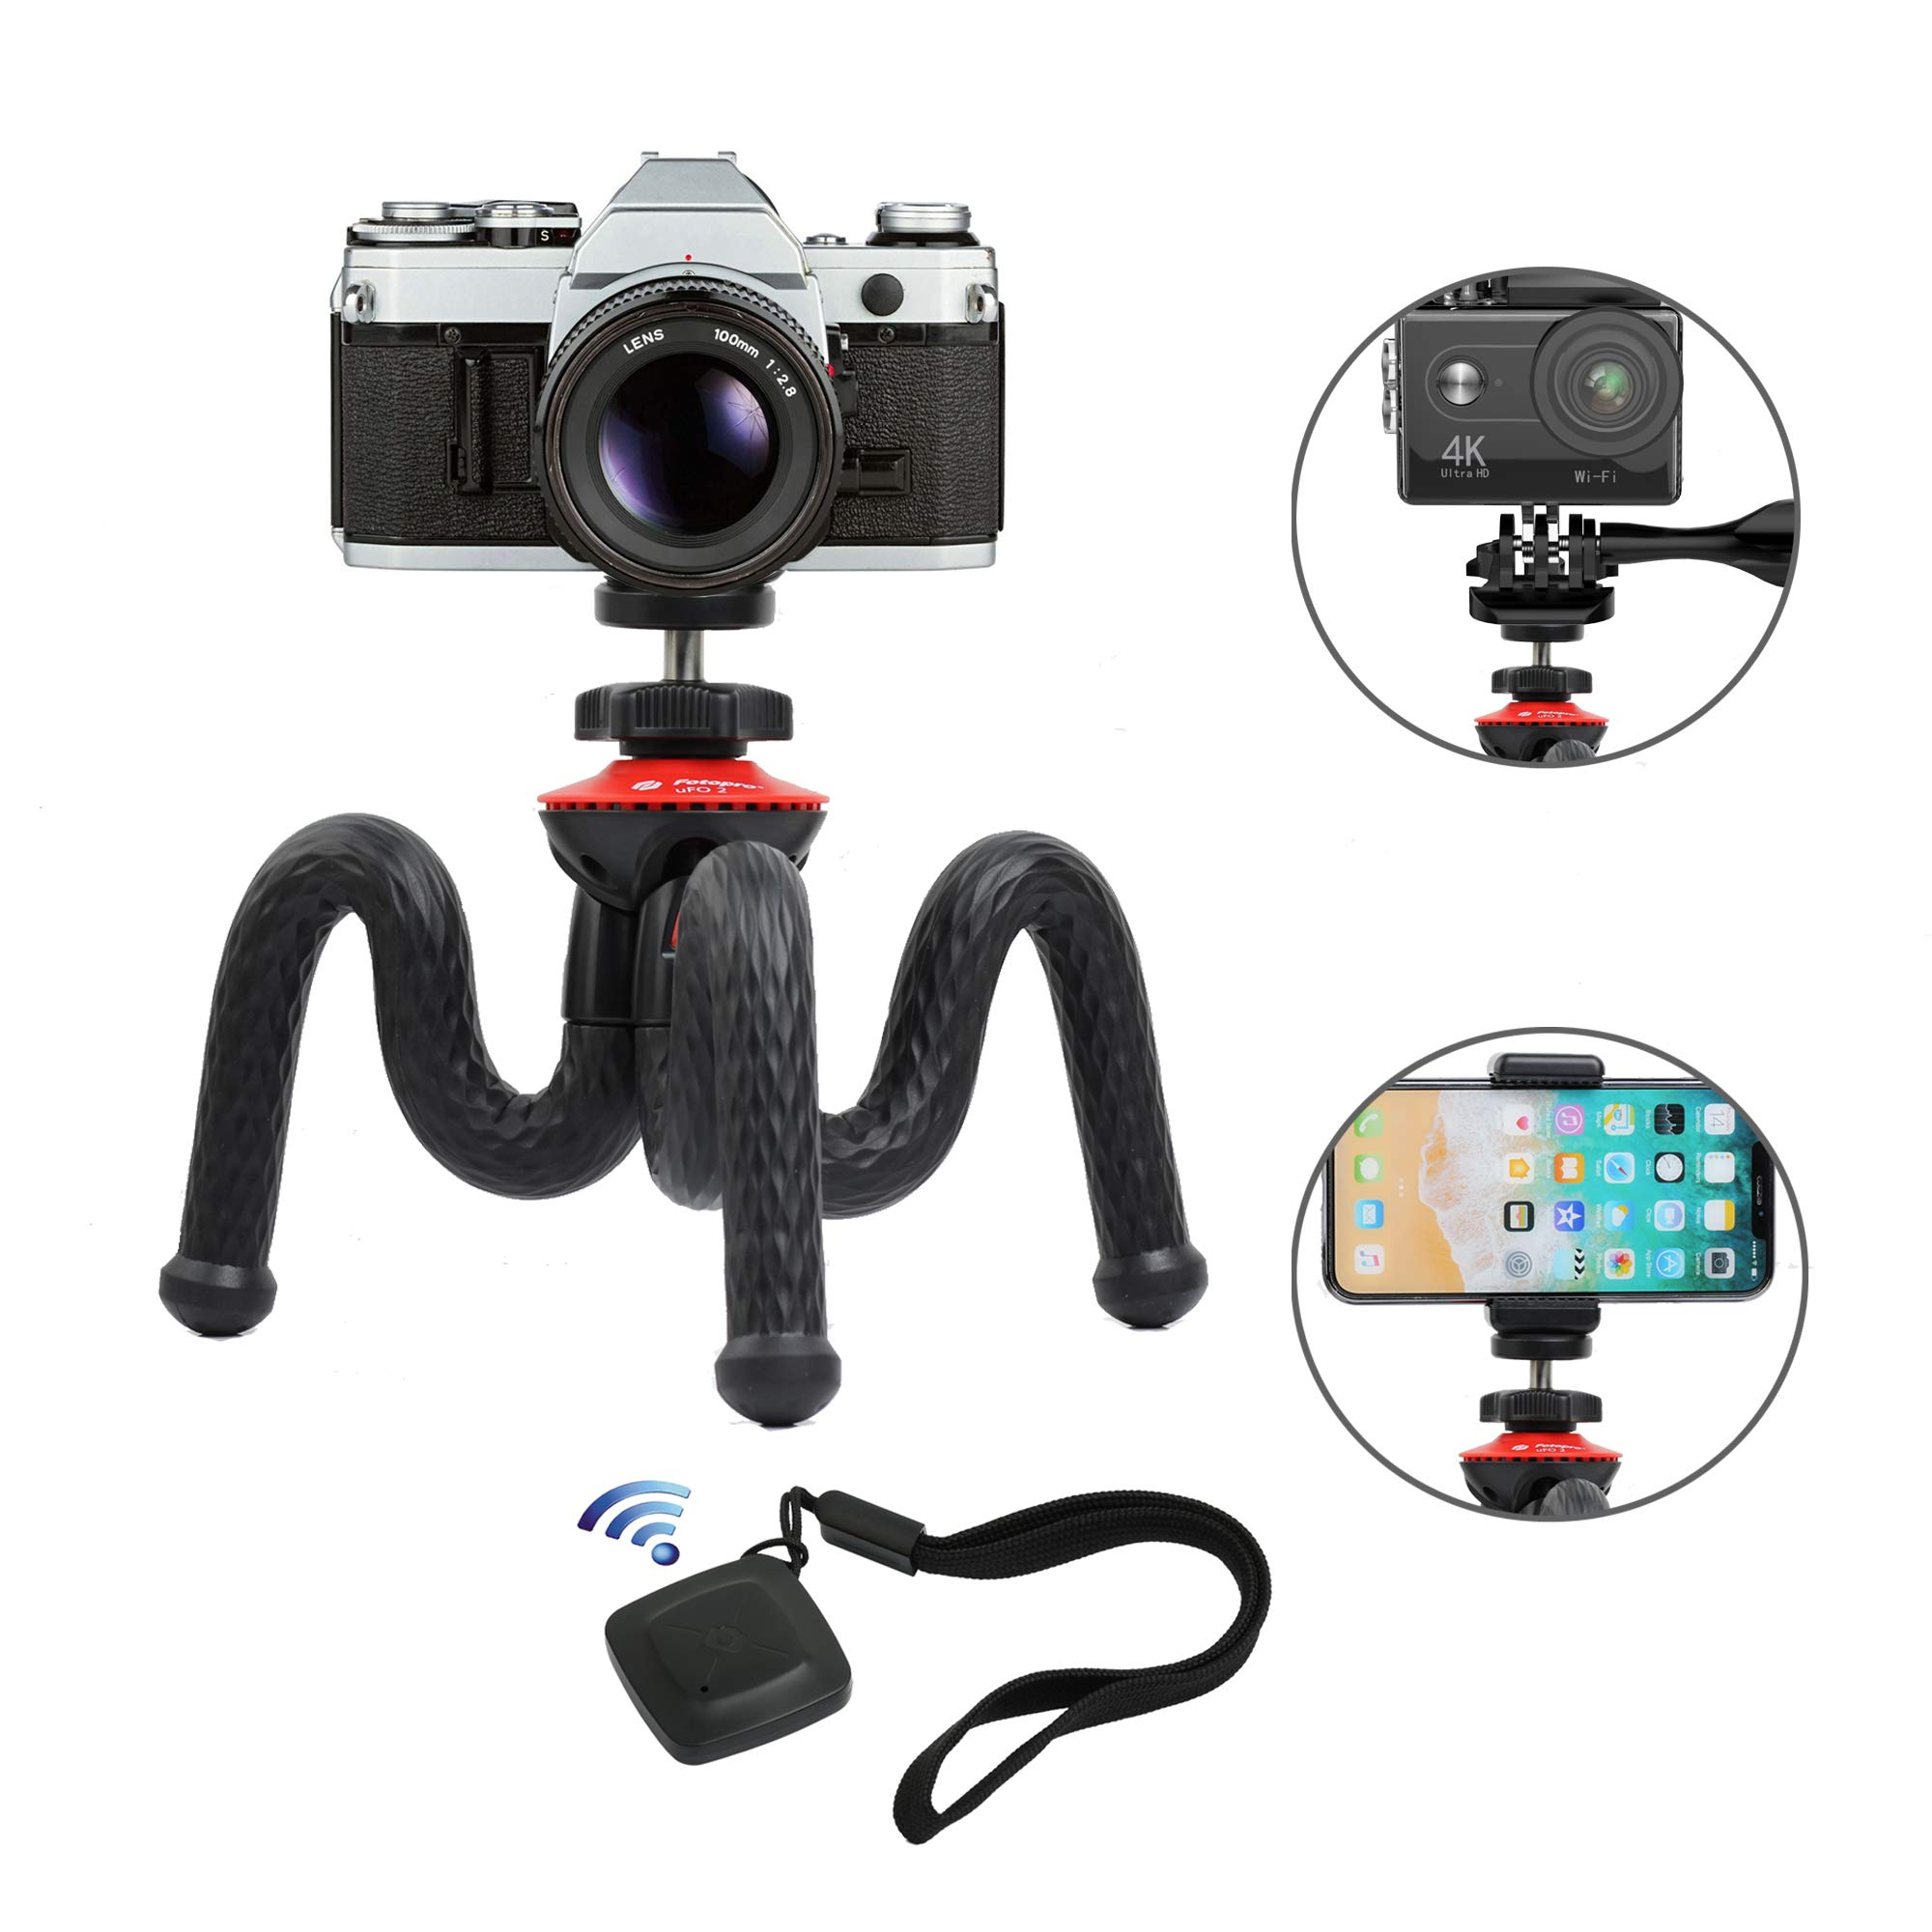 Flexible Tripod, Vomercy Travel Tripod Stand with Bluetooth Remote, 360 Degree Spherical Camera Time-Lapse Photography, Compatible with Mini Camera, GoPro and Any Mobile Phone